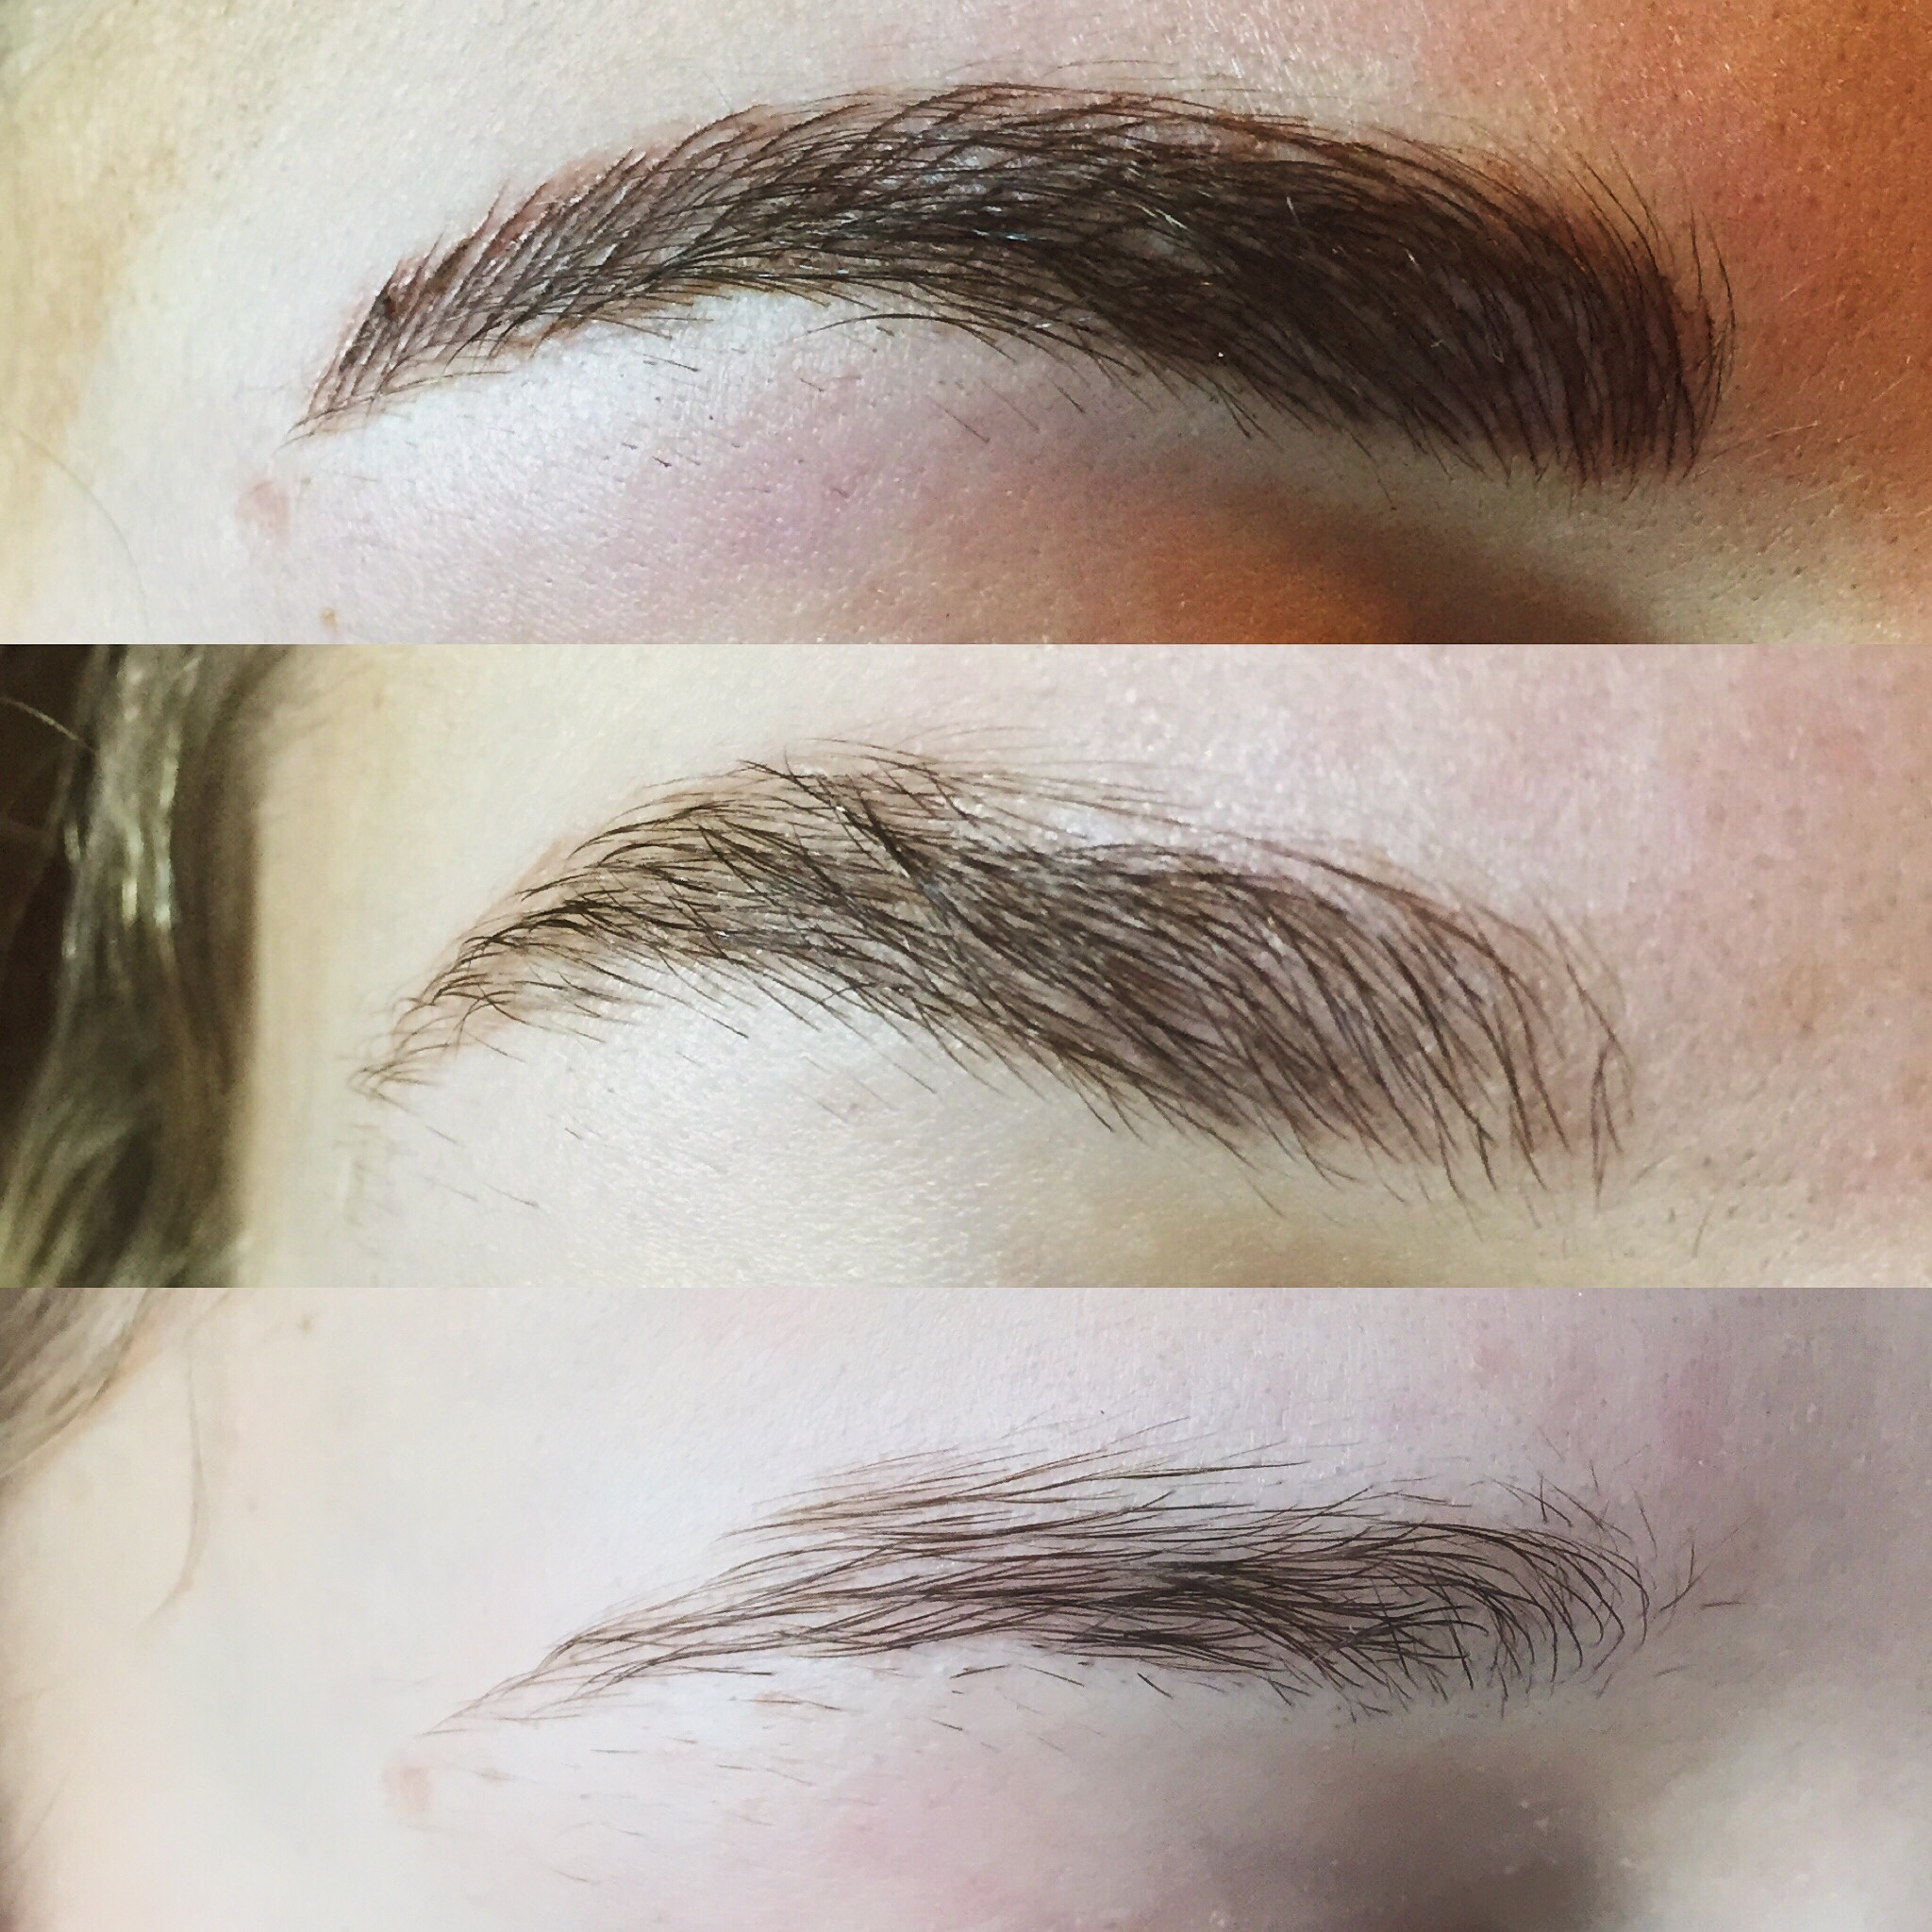 What Does Microblading Feel Like? What is Microblading?